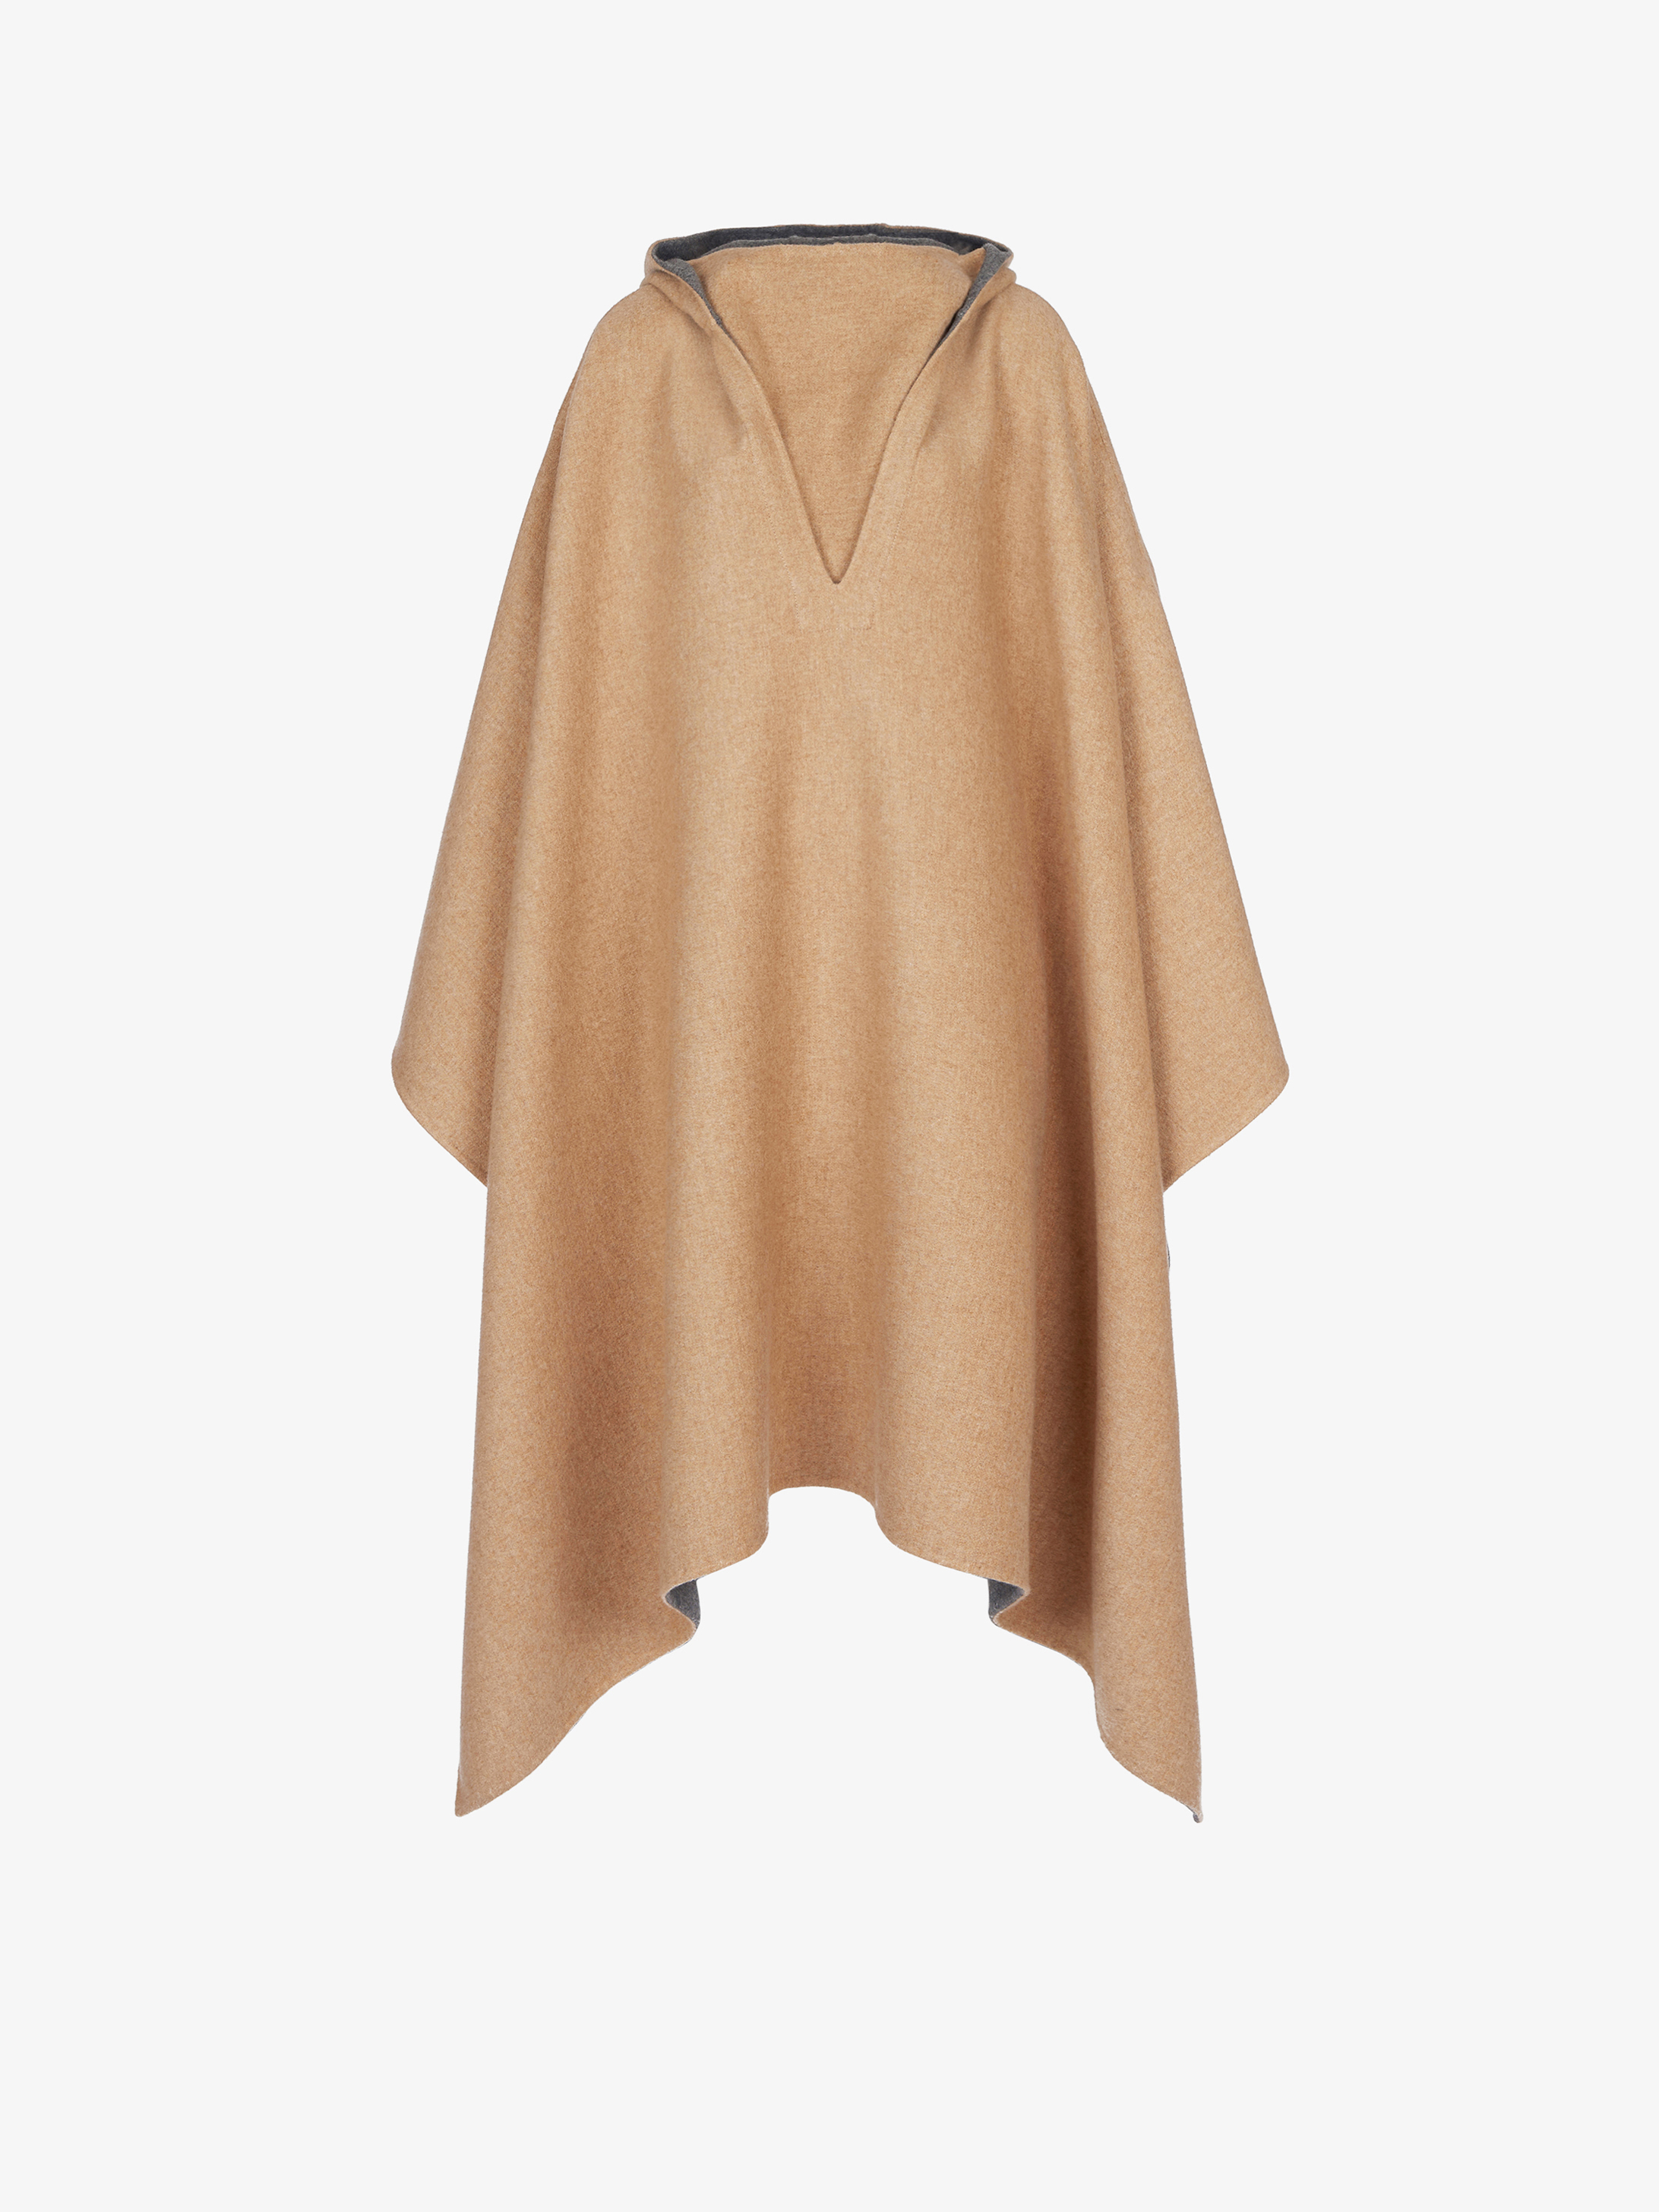 Reversible cape in double face cashmere